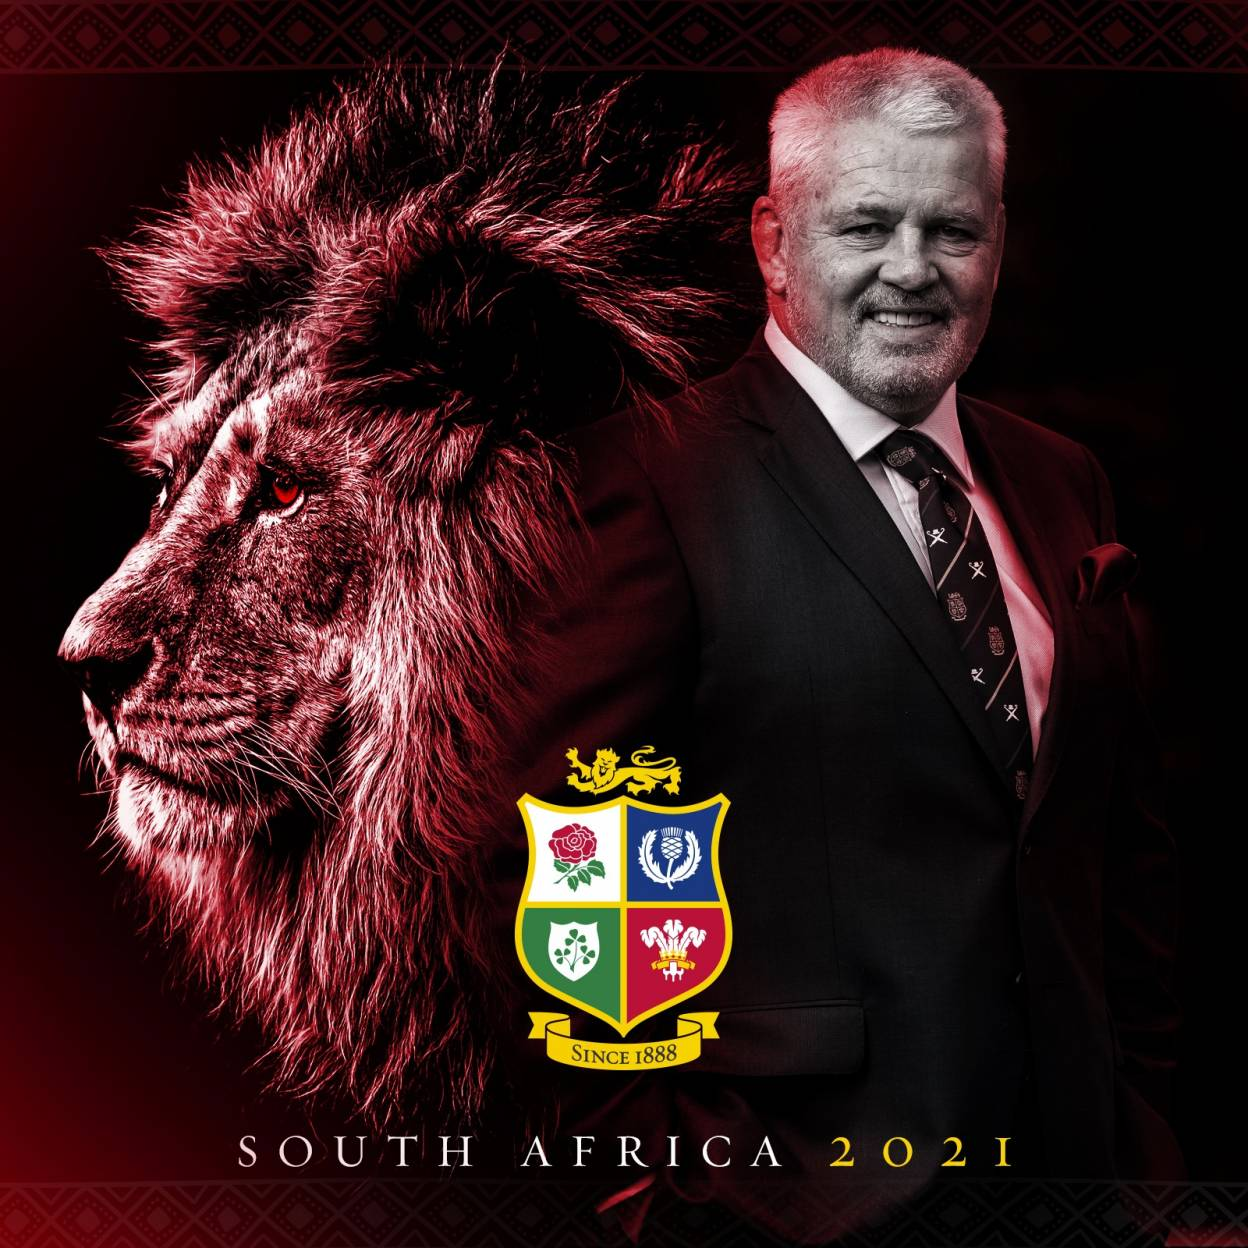 Warren Gatland Appointed Lions Head Coach For 2021 Tour